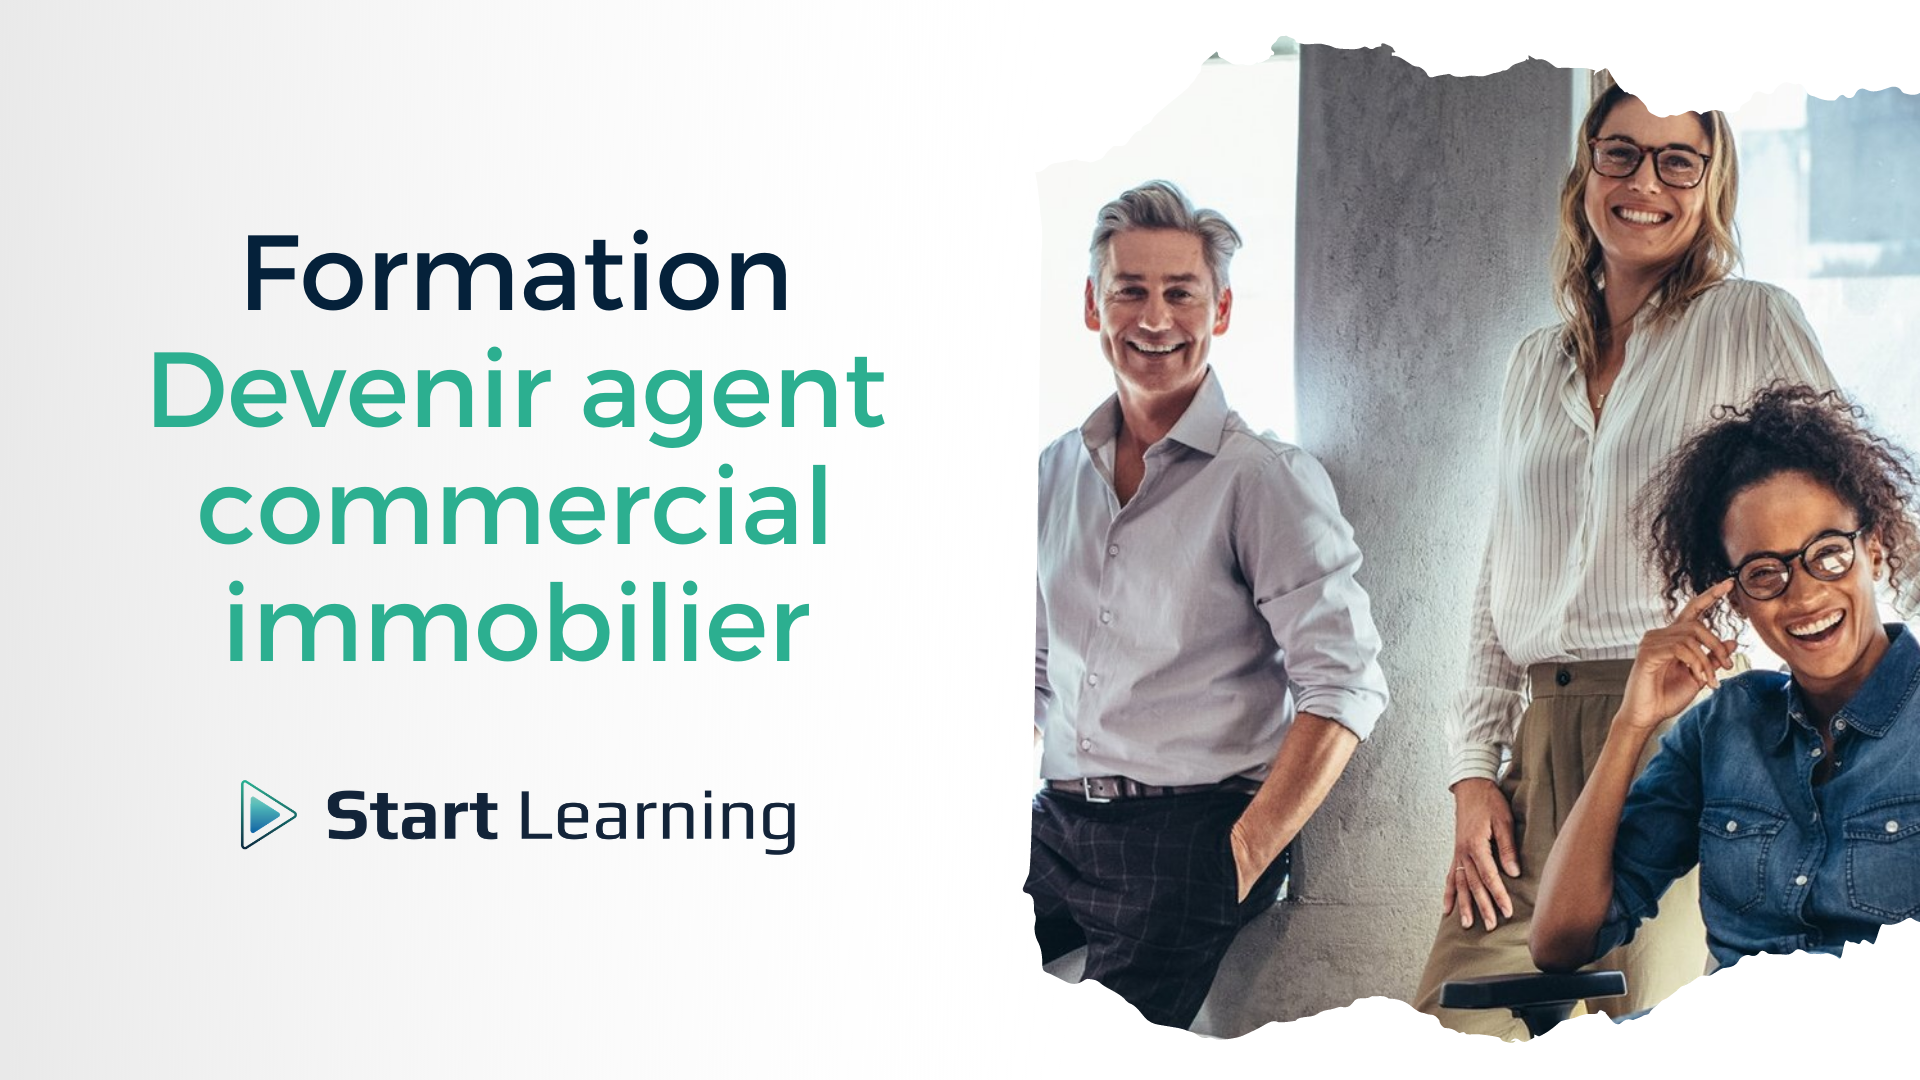 Formation Devenir agent commercial immobilier - Start Learning